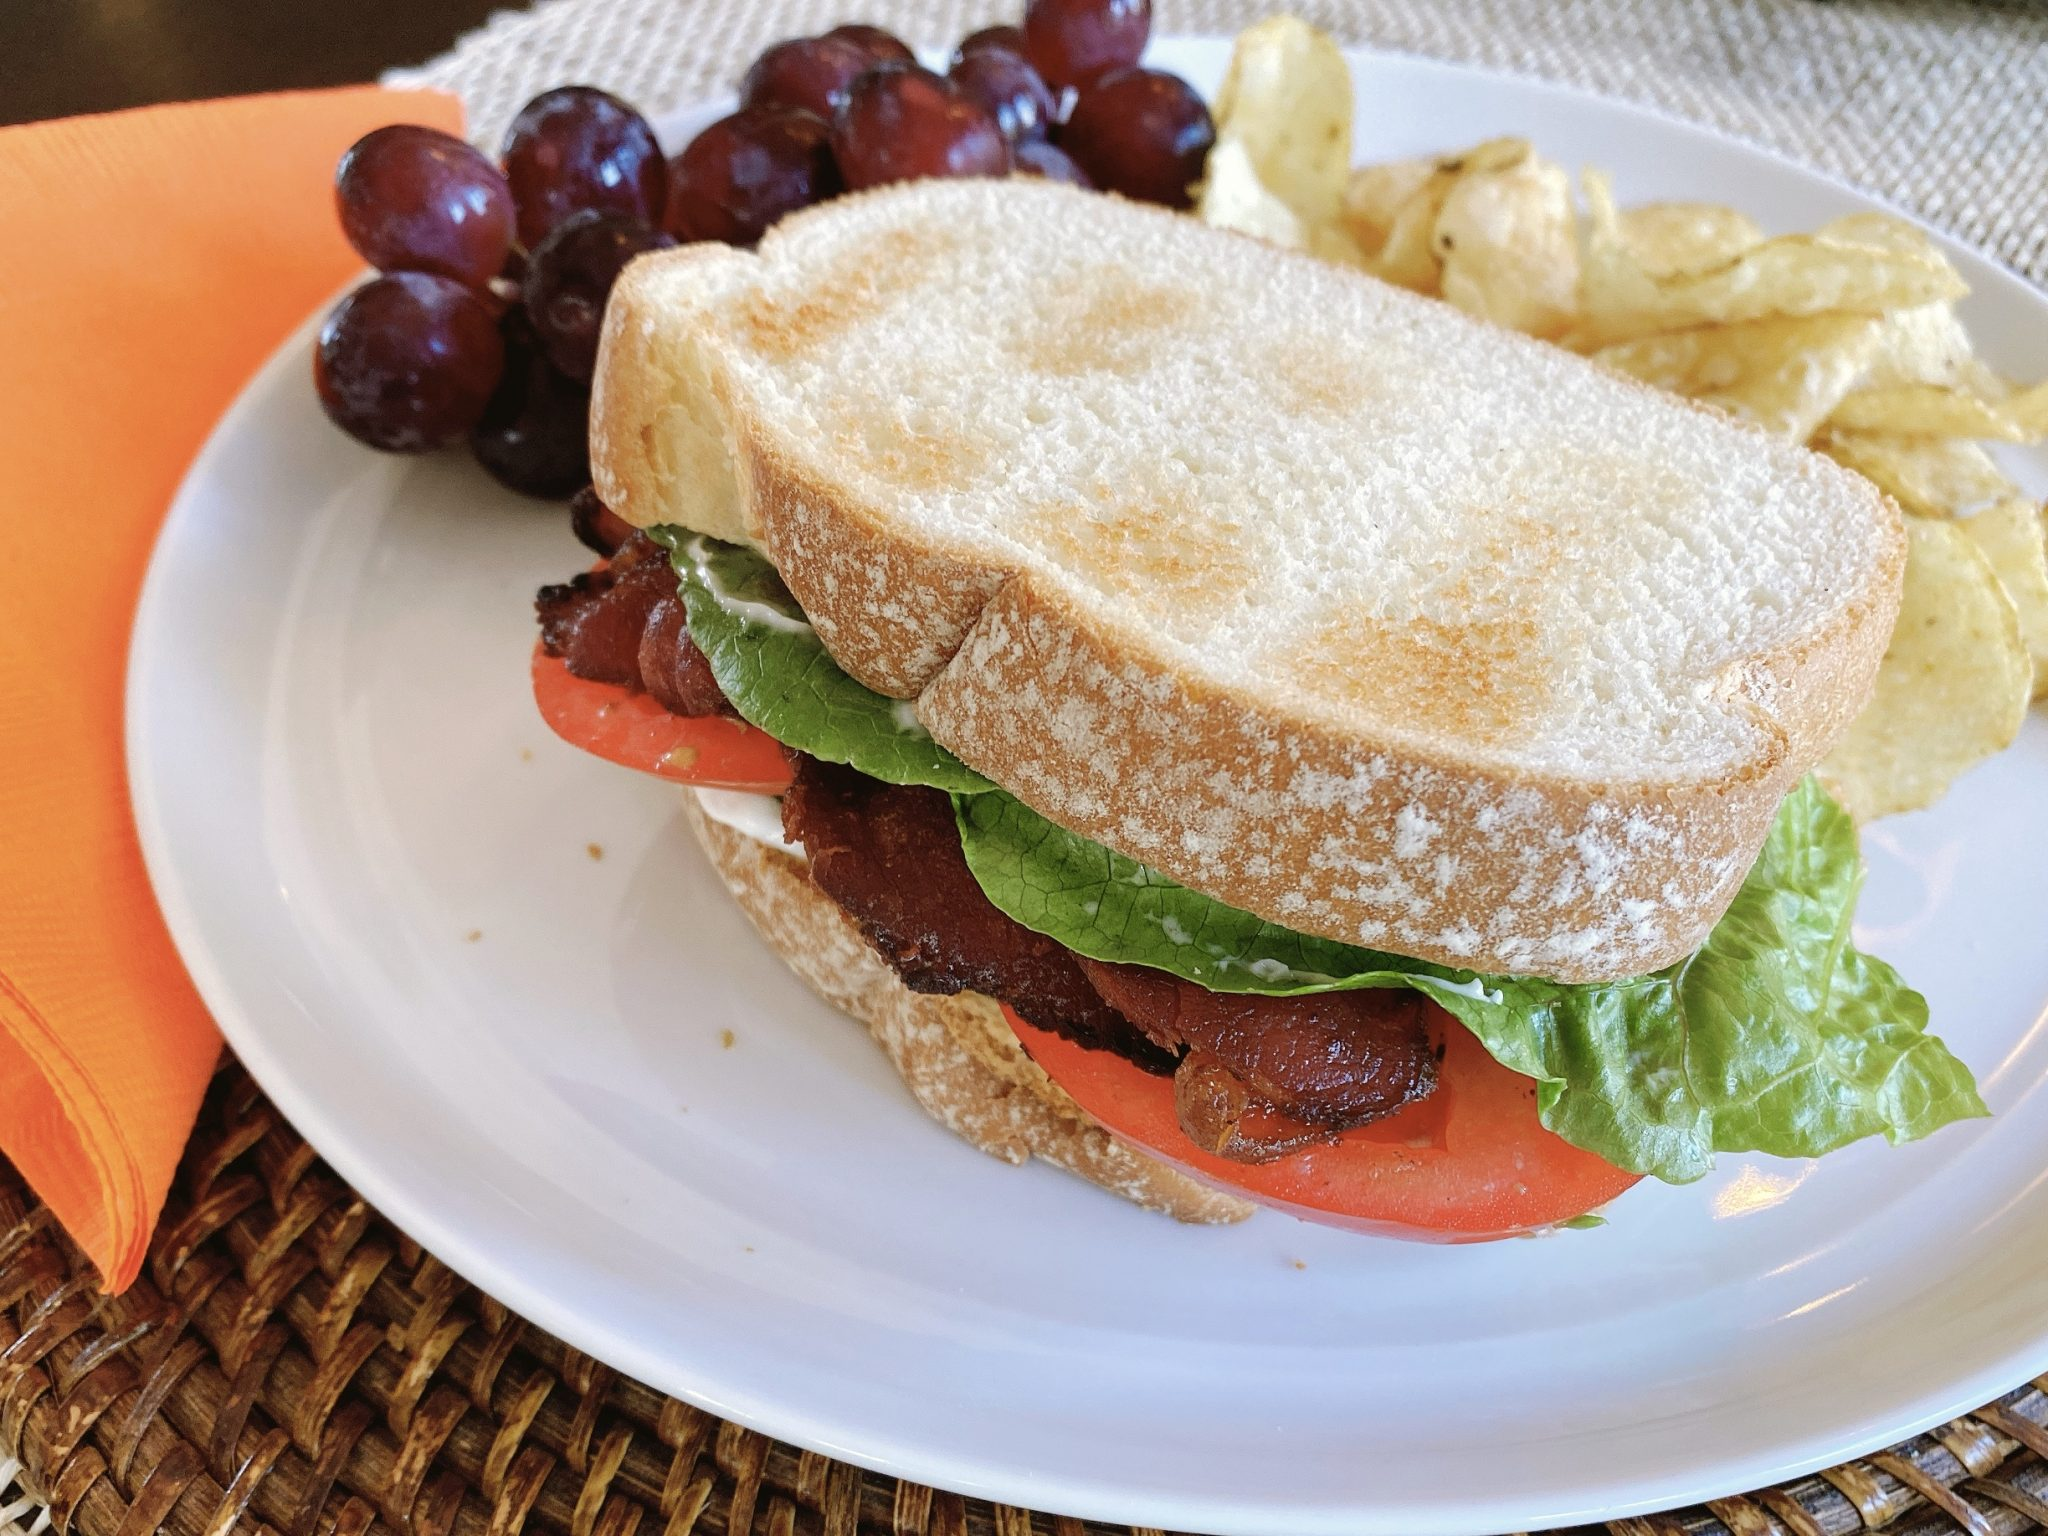 The Best Bacon, Lettuce & Tomato Sandwich Starts with the Bacon